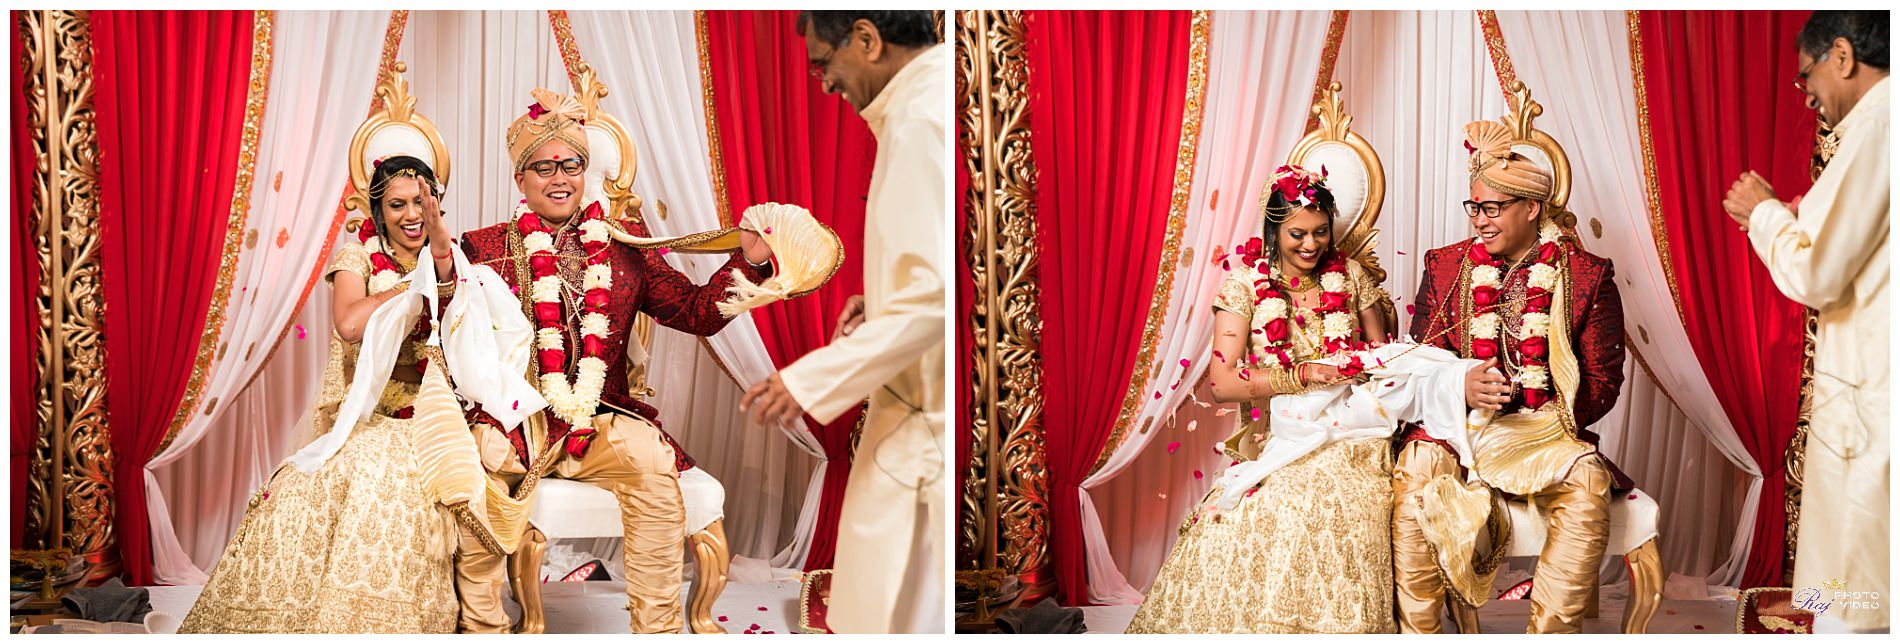 Aashirwad-Palace-Randolph-NJ-Hindu-Wedding-Ceremony-Khusbu-Jeff-19.jpg